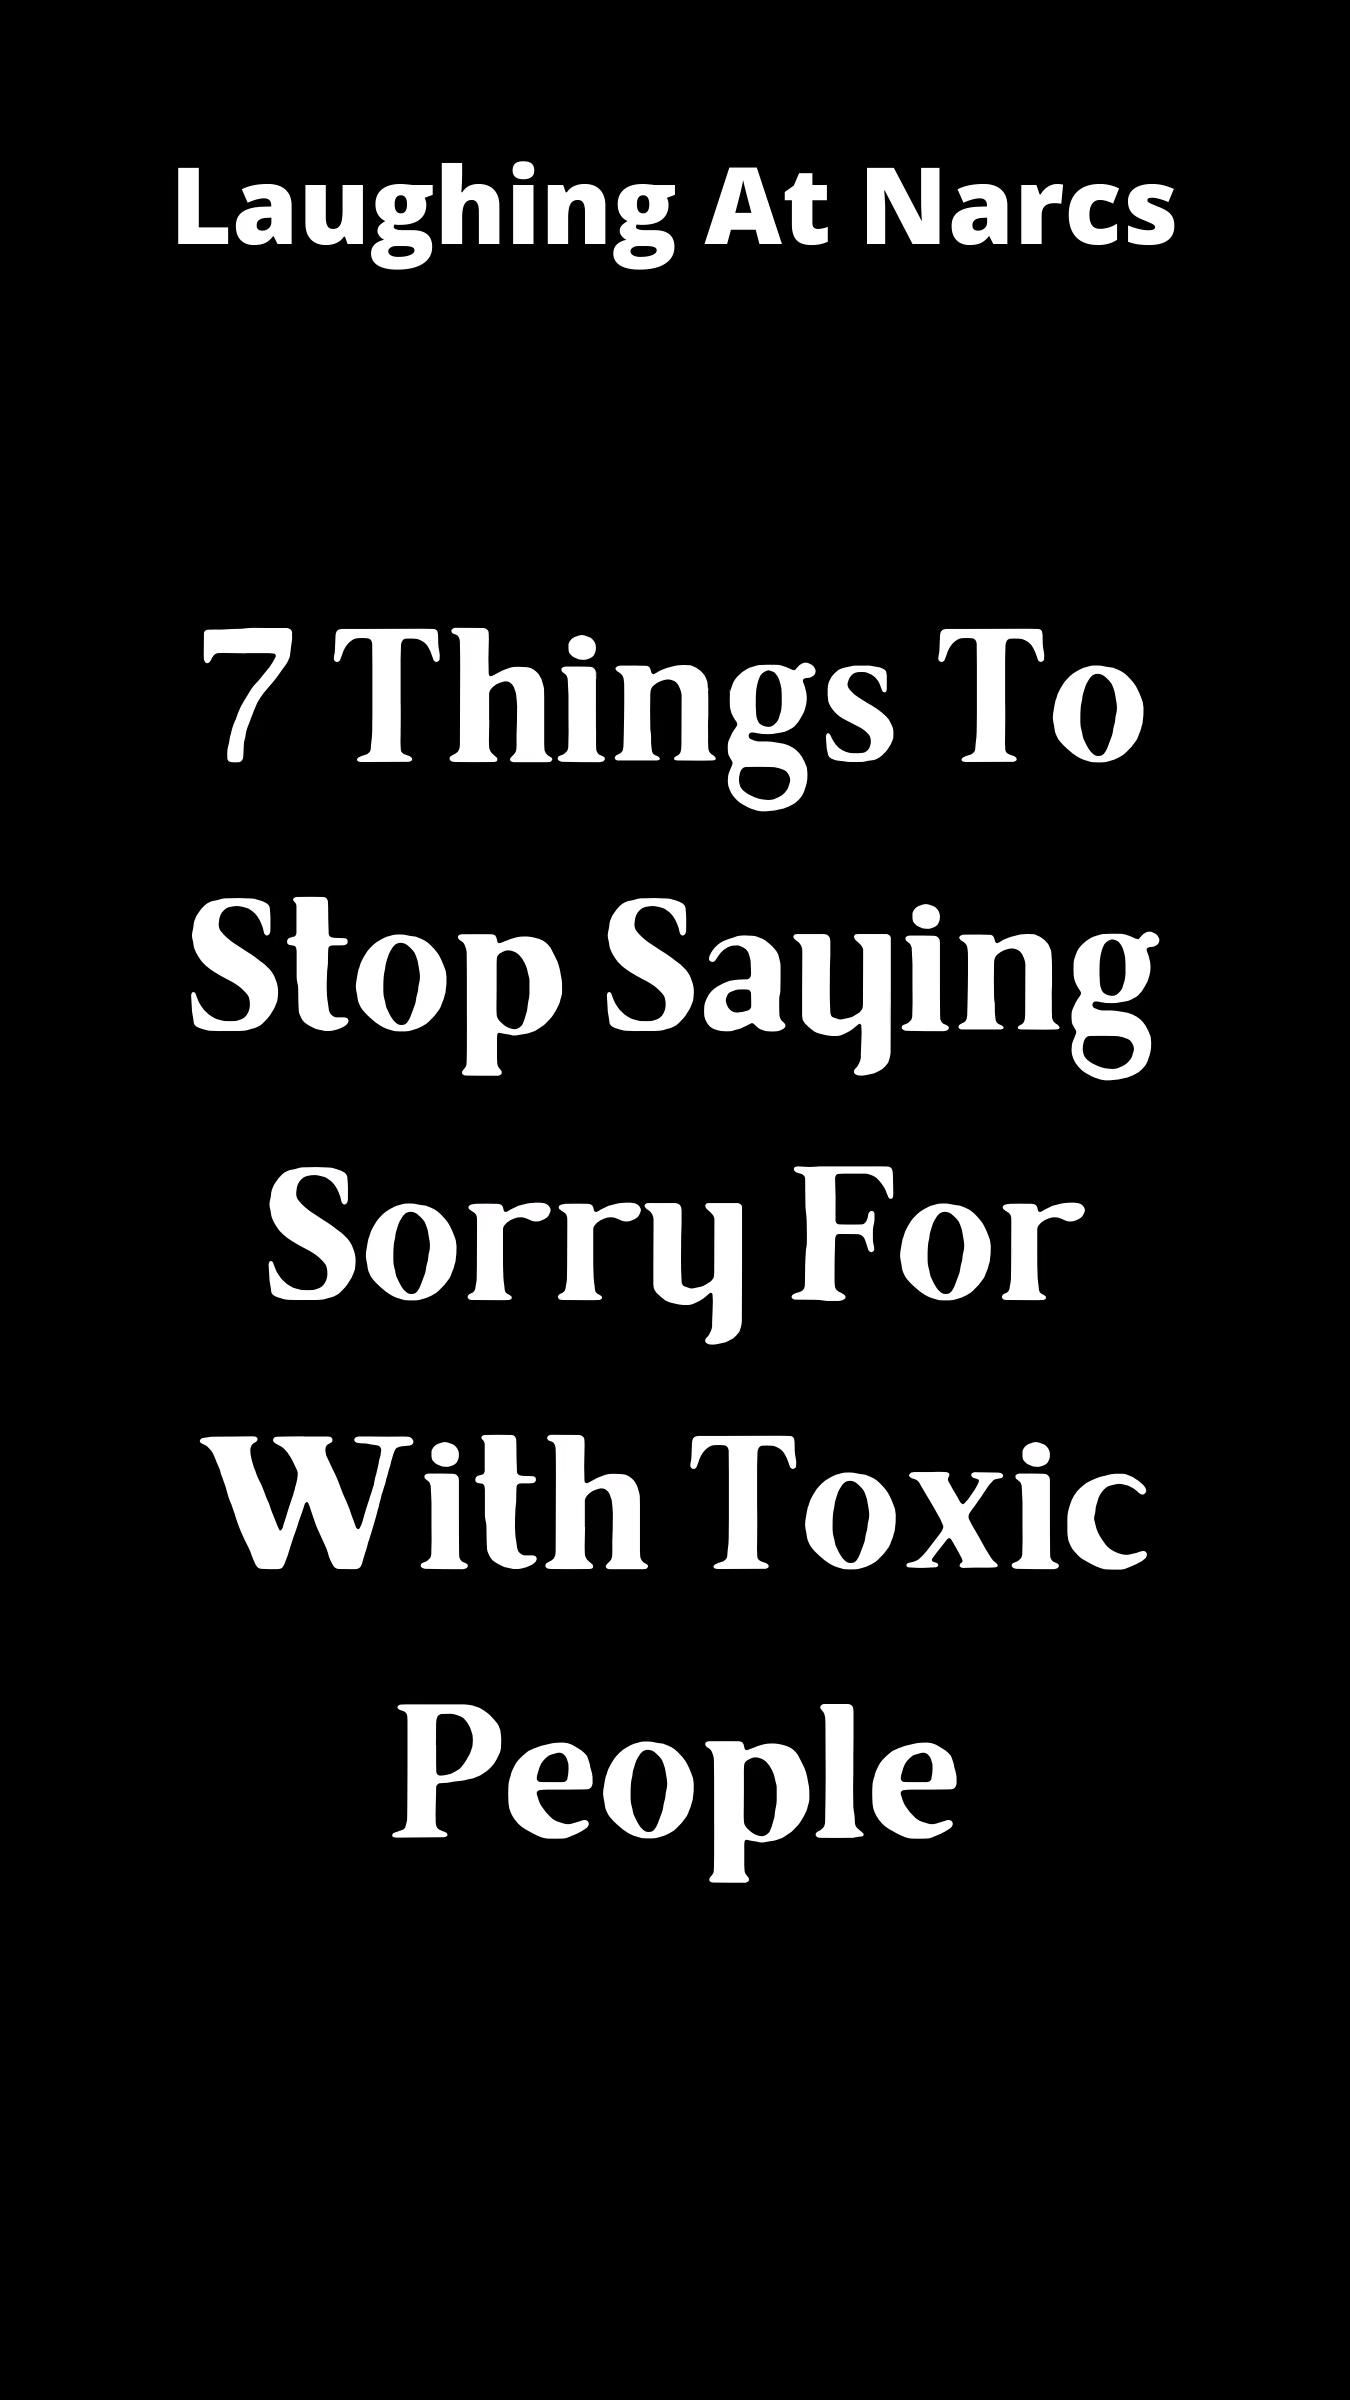 7 Things To Stop Saying Sorry For With Toxic People